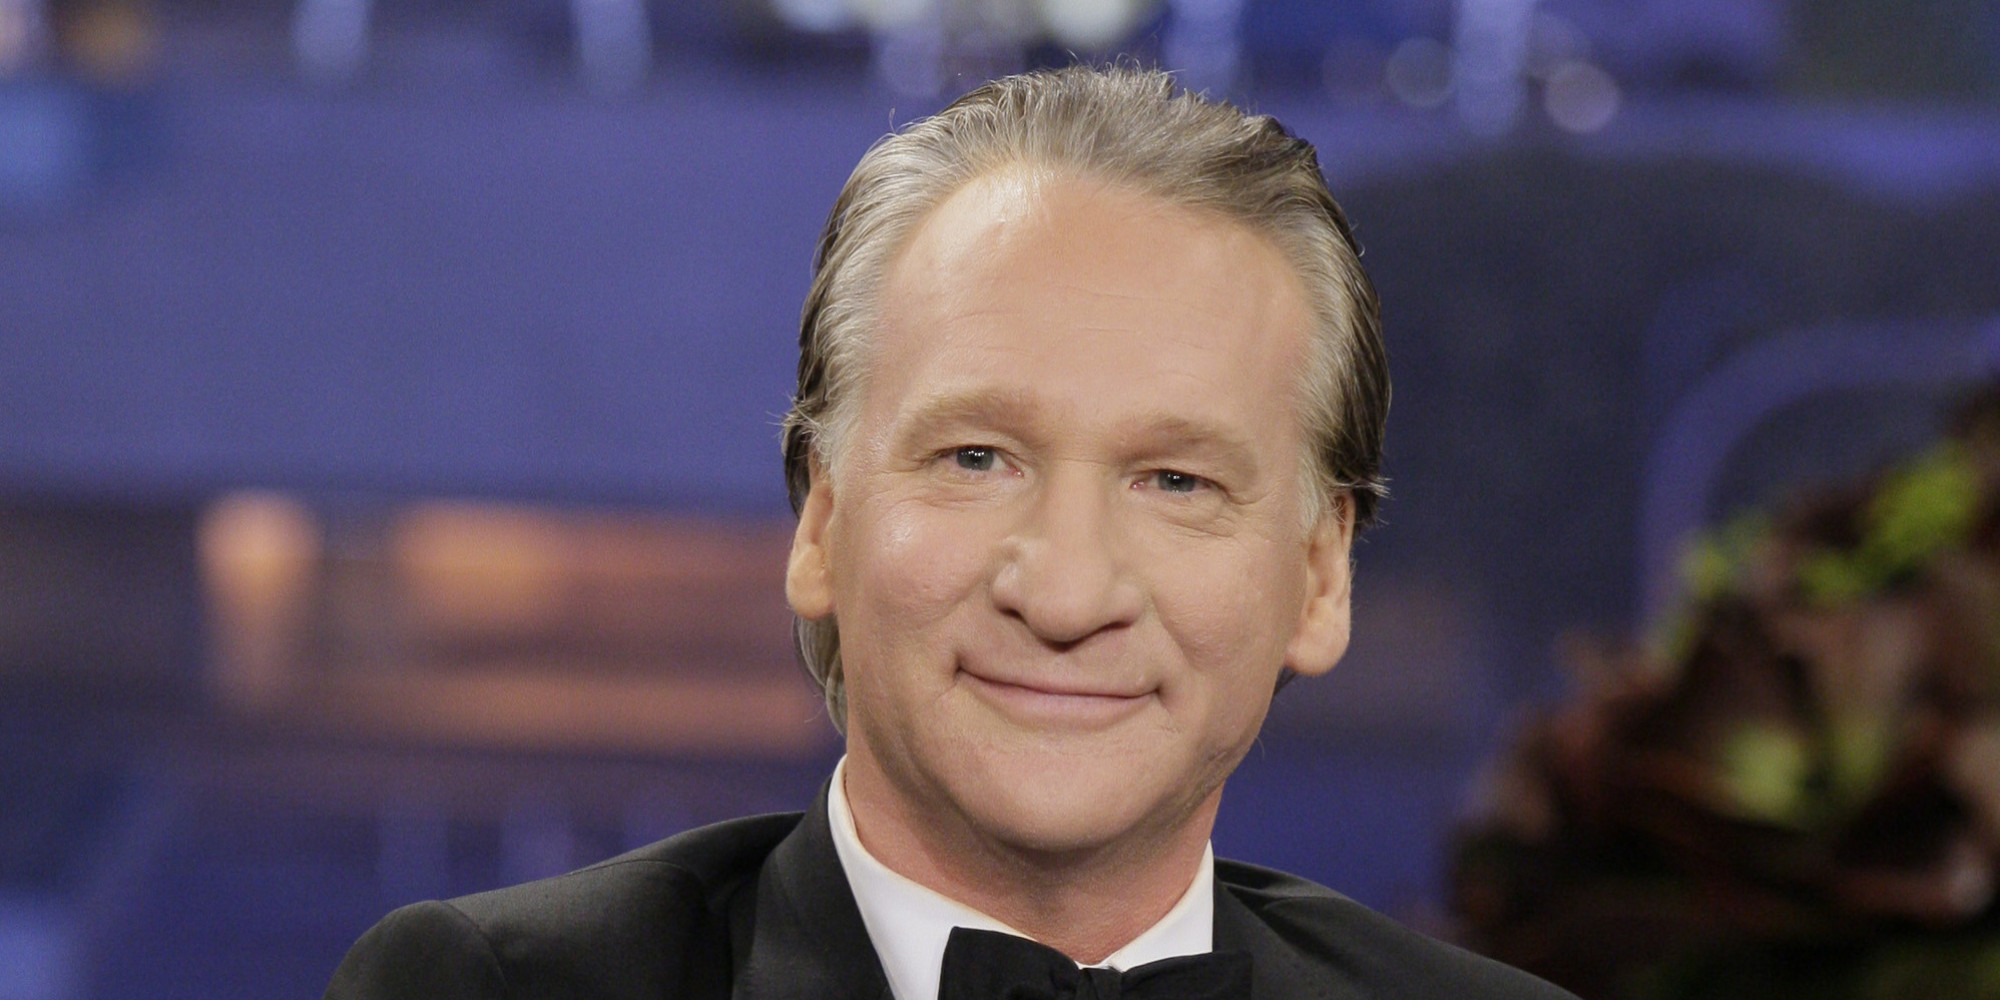 Bill Maher earned a unknown million dollar salary, leaving the net worth at 23 million in 2017